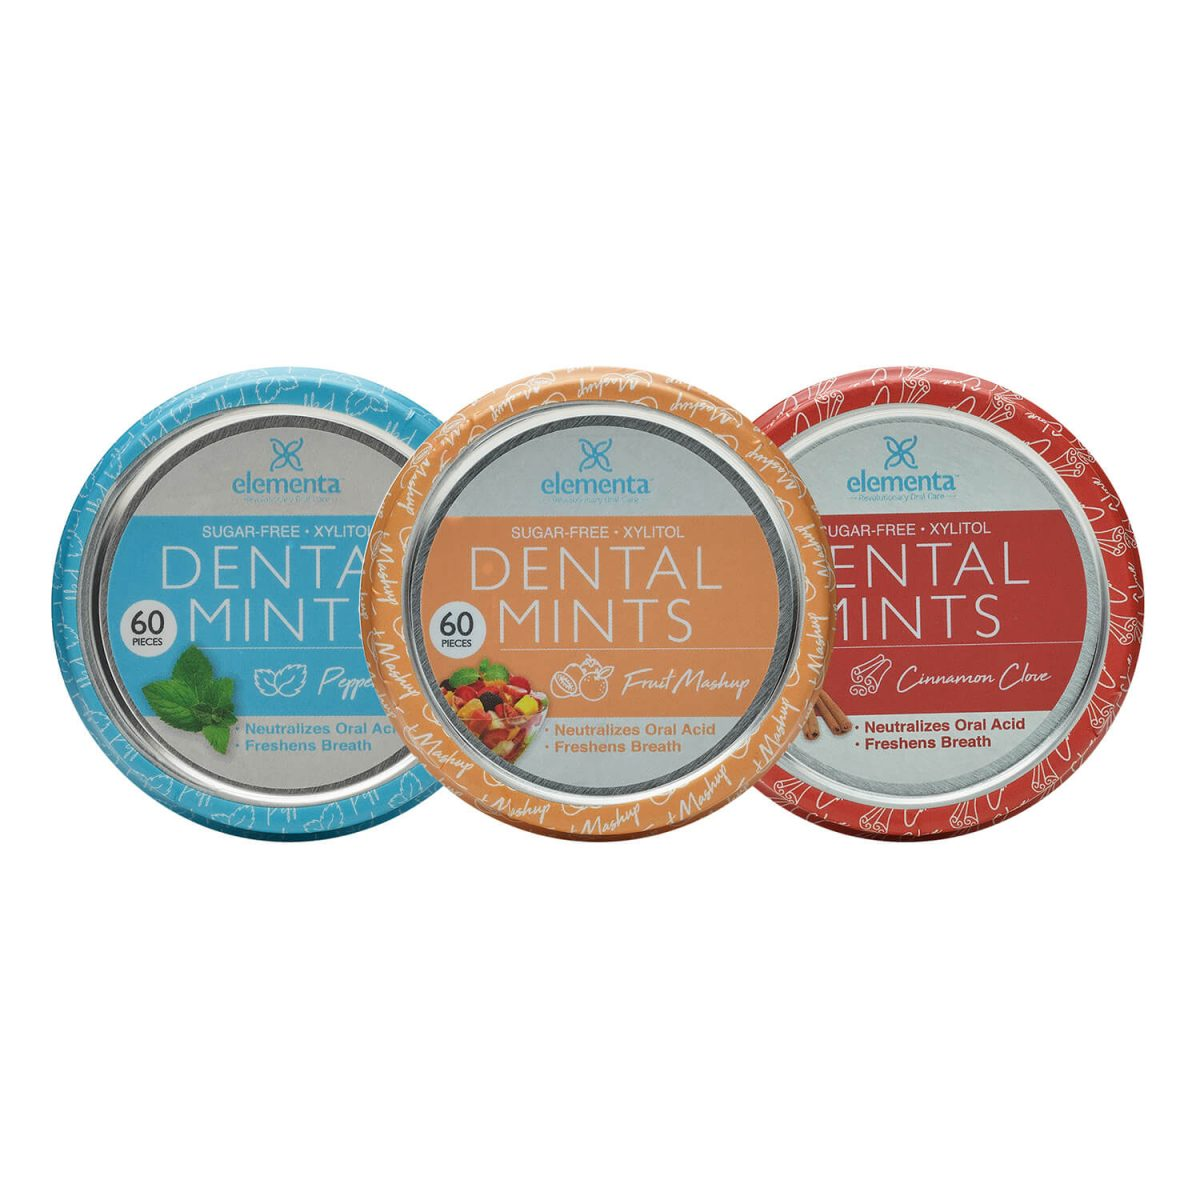 image of three different flavors of Elementa Silver dental mints